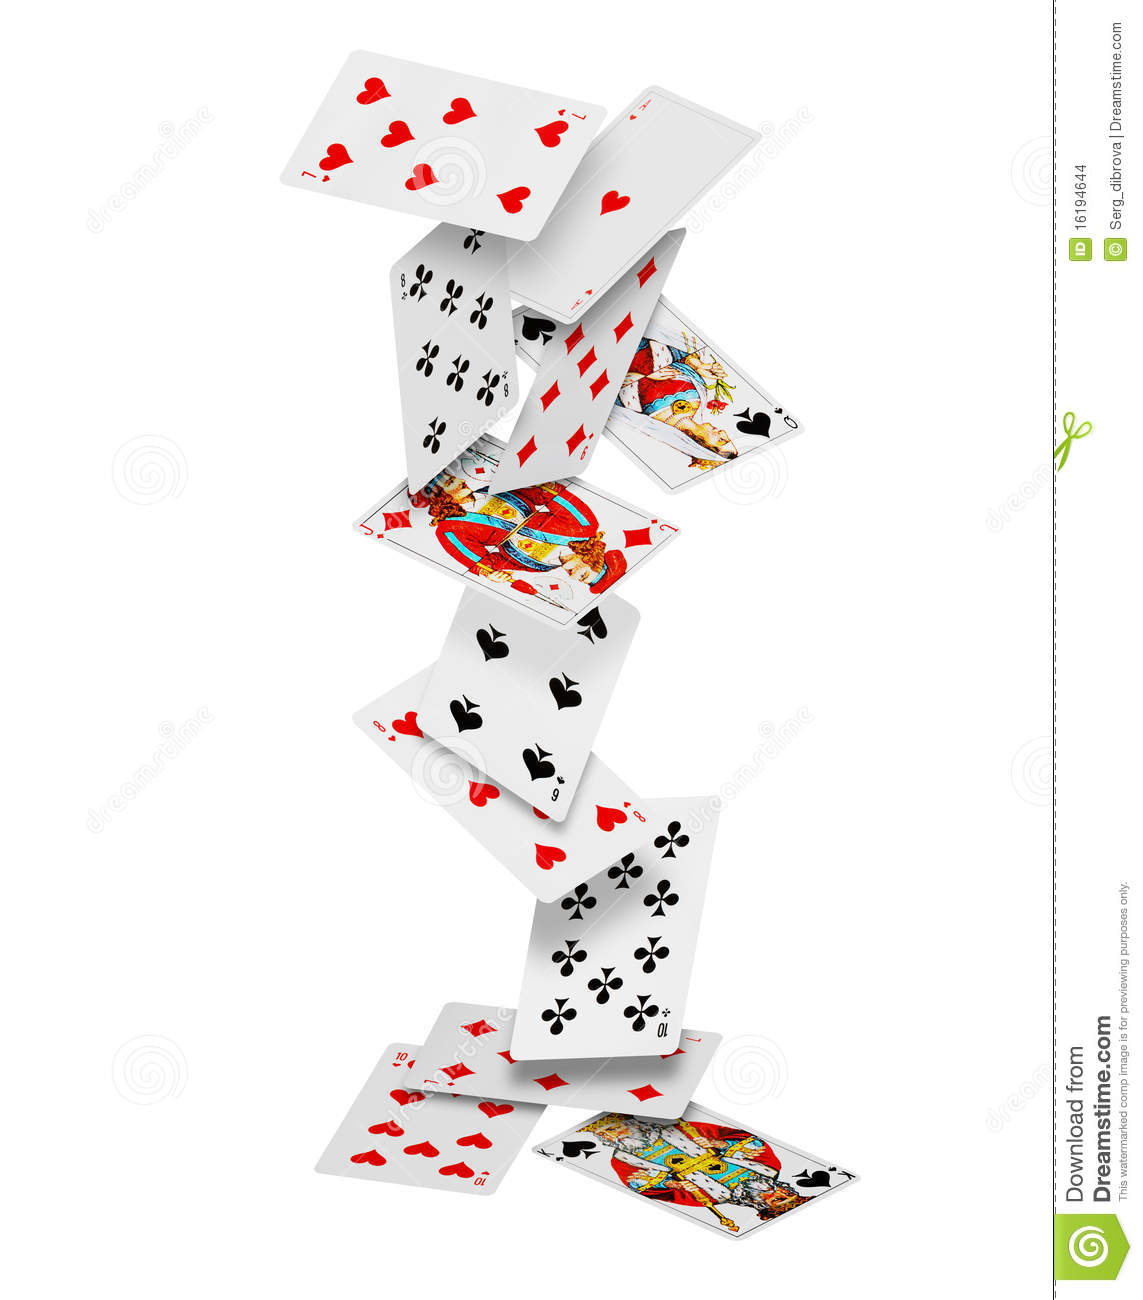 Playing cards falling down on white background.